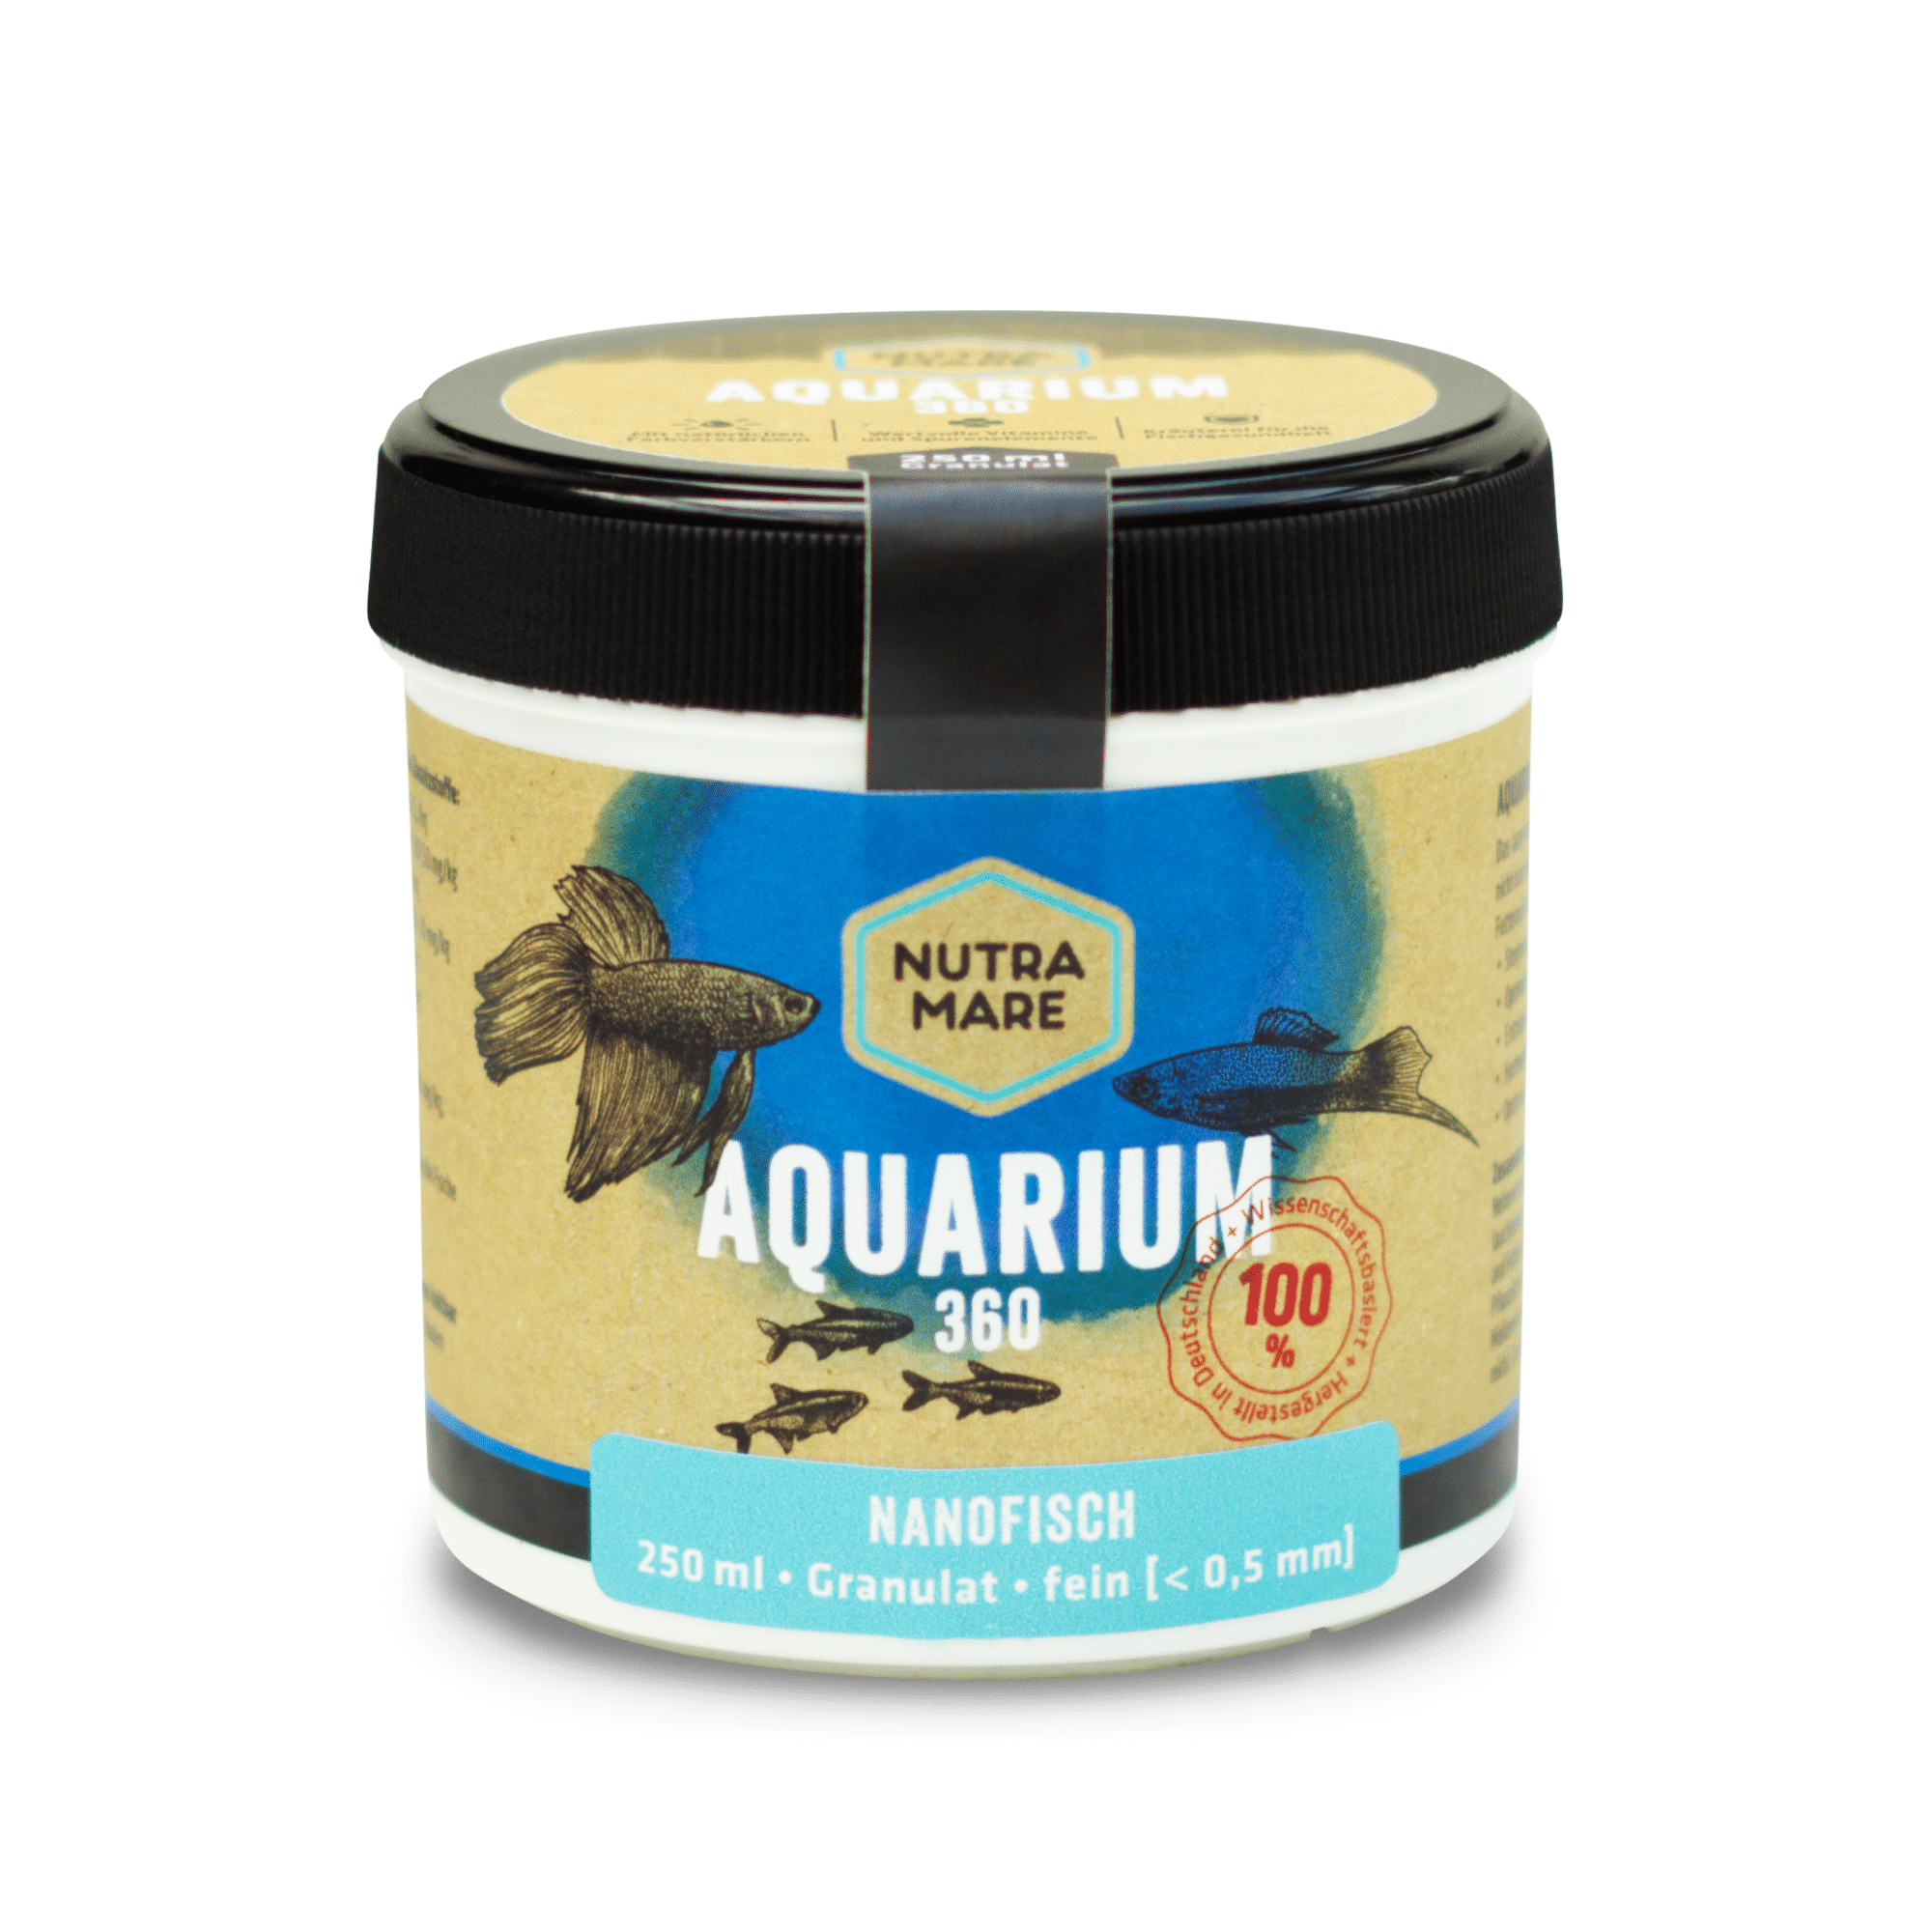 Aquariumfutter Nutramare Aquarium360 Nanofisch 250ml